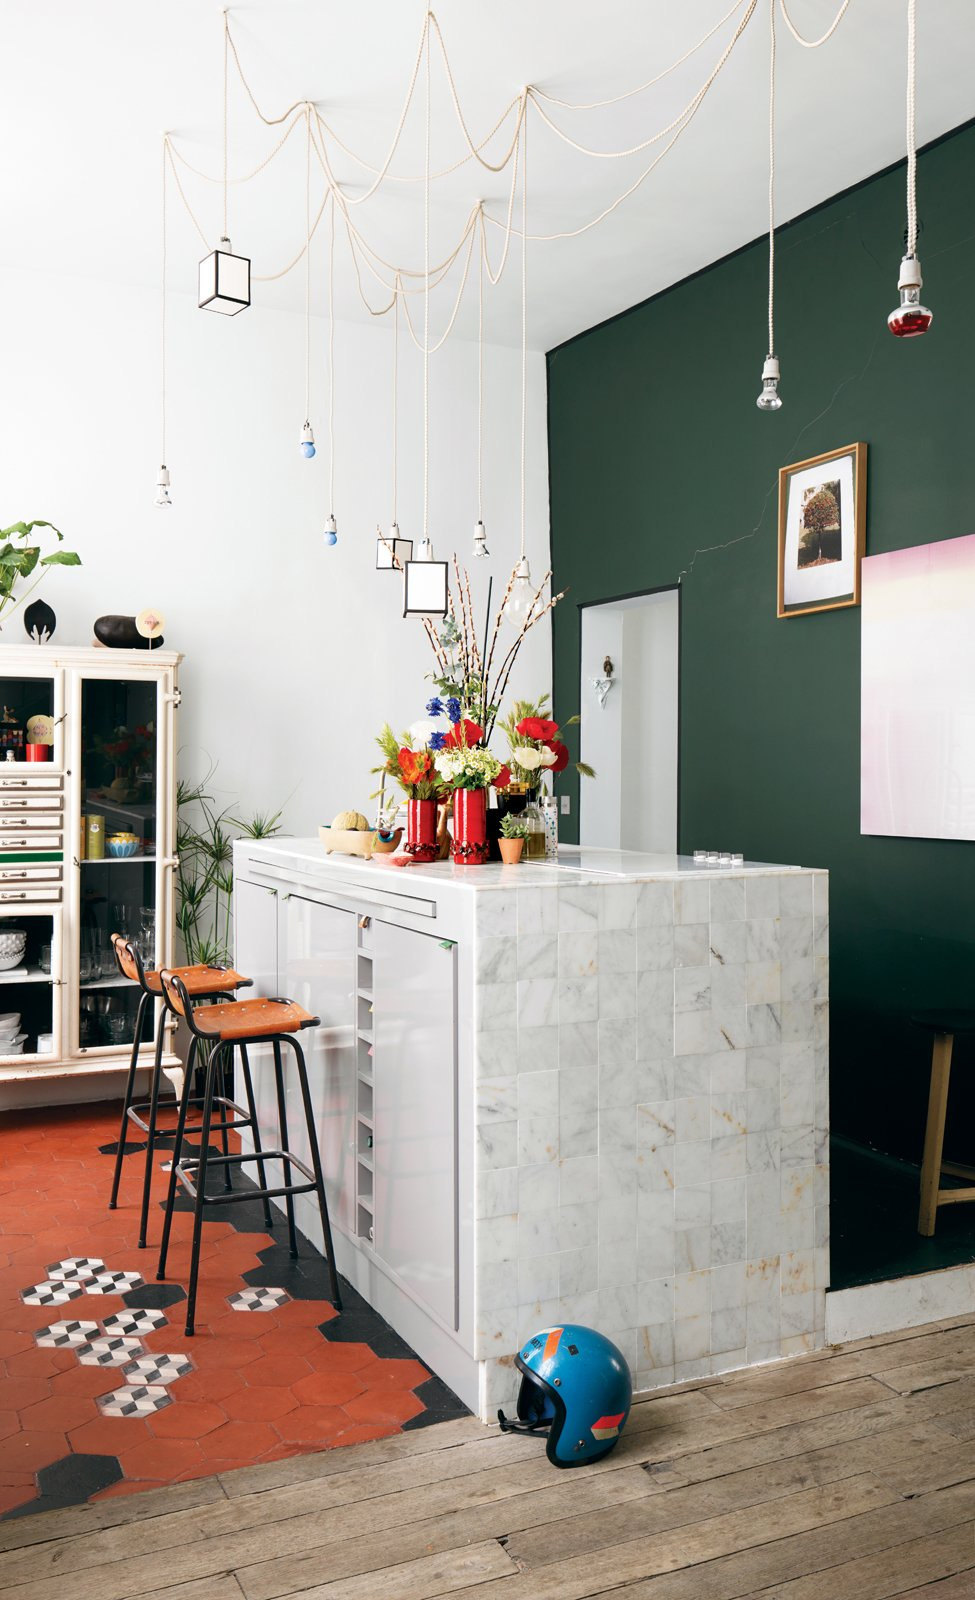 Homeowner Aumas designed the kitchen island, which is covered in marble tiles from Carrelages du Marais—the geometric floor tiles are from the same place—and strung the matrix of lights up above it.  Photo:  Christian Schaulin